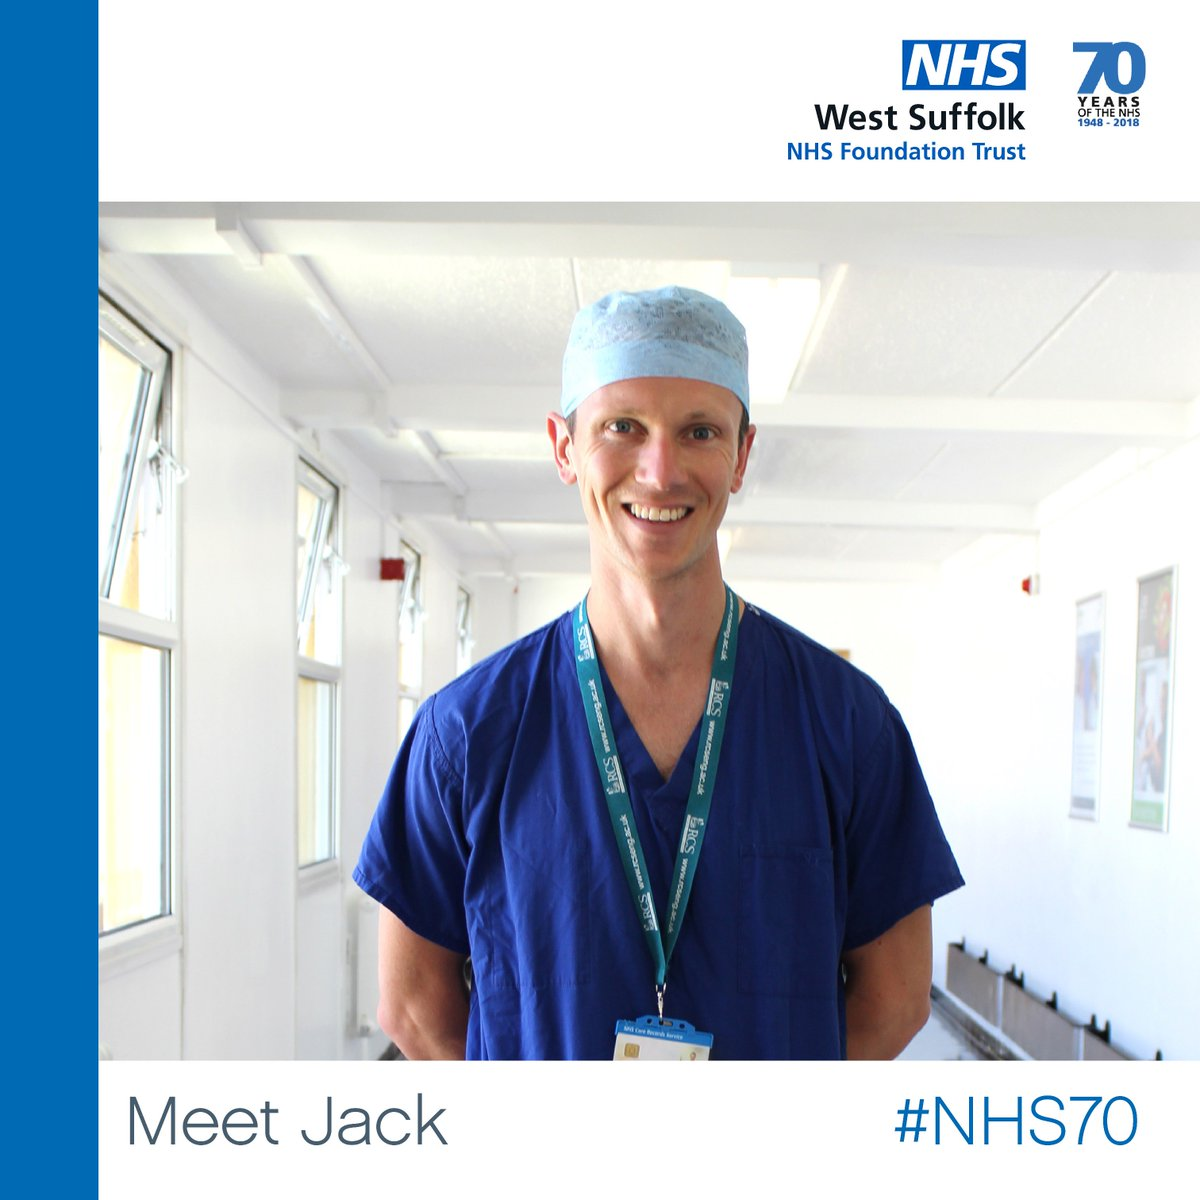 West Suffolk NHS FT on Twitter: